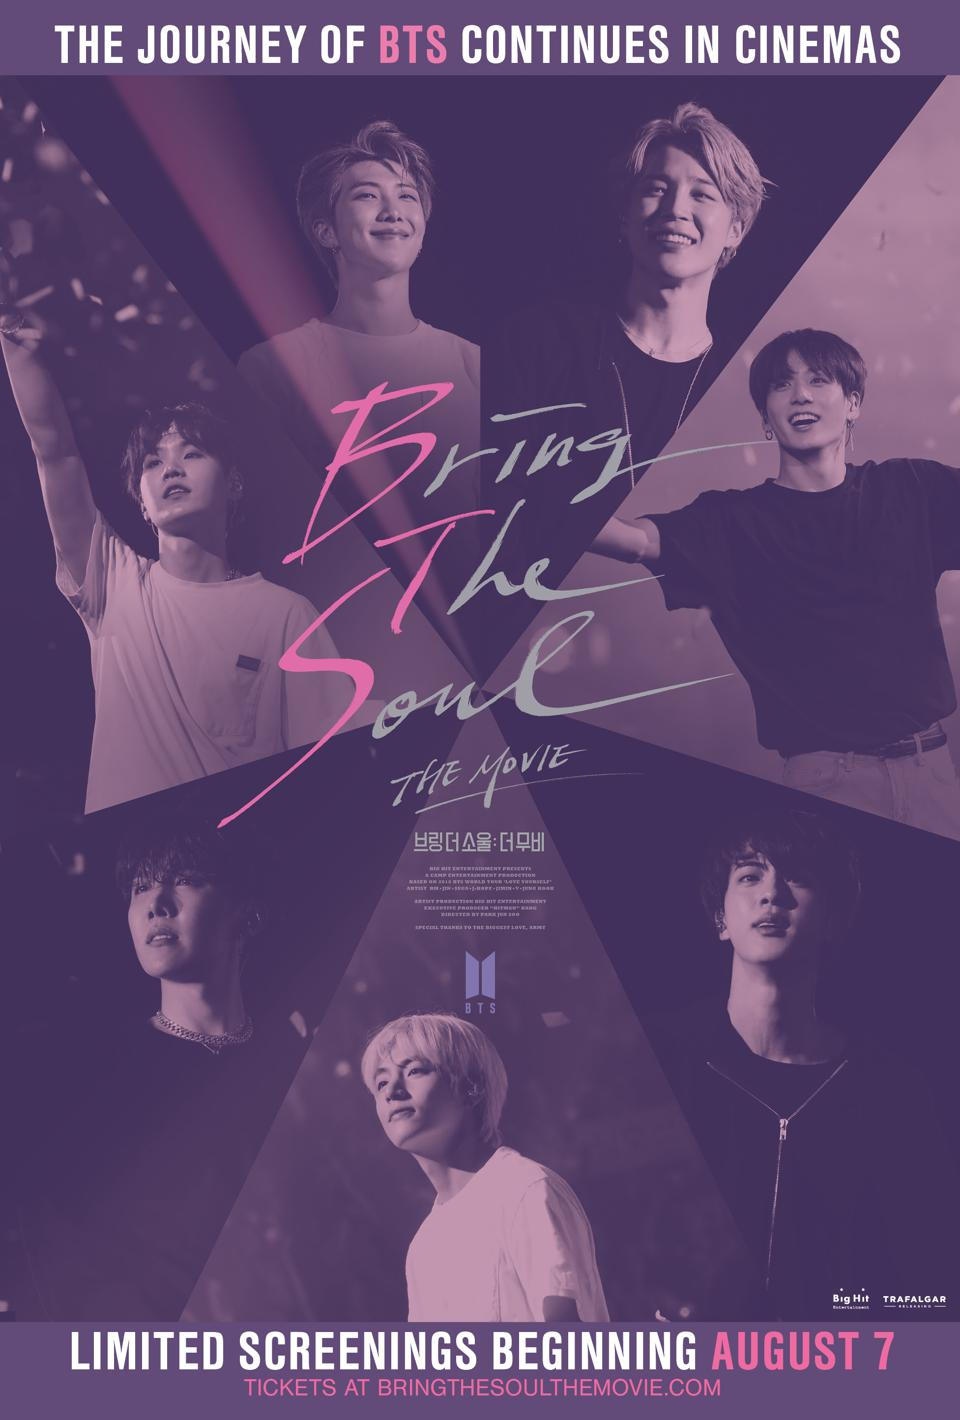 A poster for BTS's 'Bring the Soul: The Movie.'